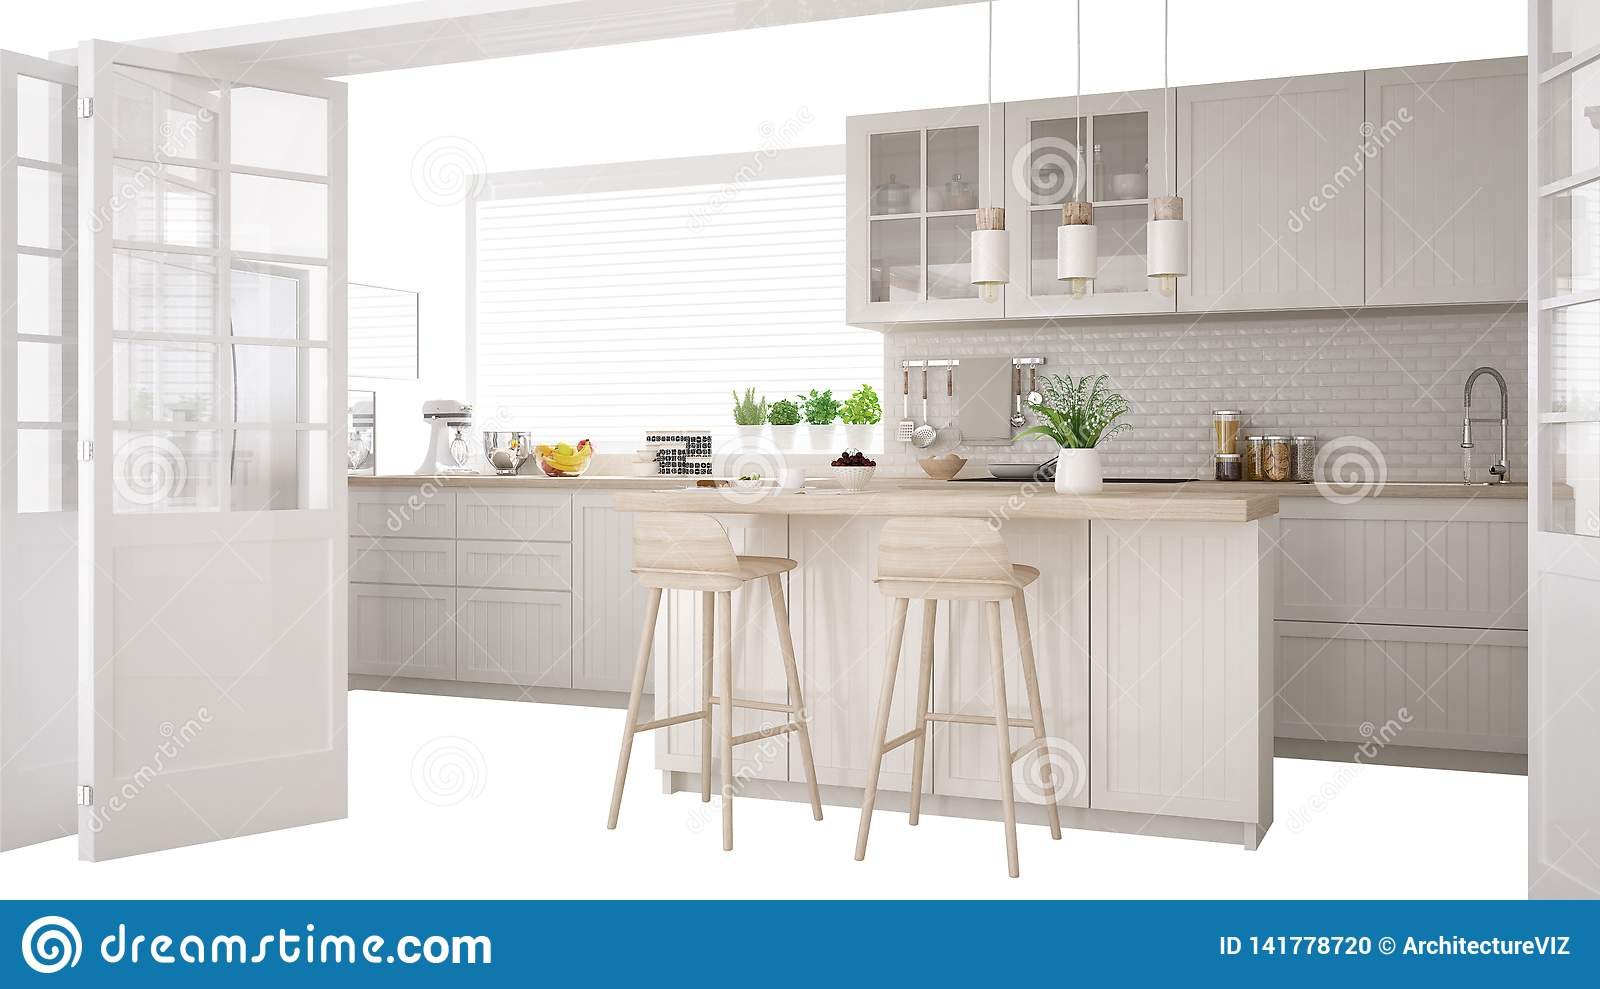 Kitchen Island Design Template Scandinavian White Kitchen With Island And Accessories Interior